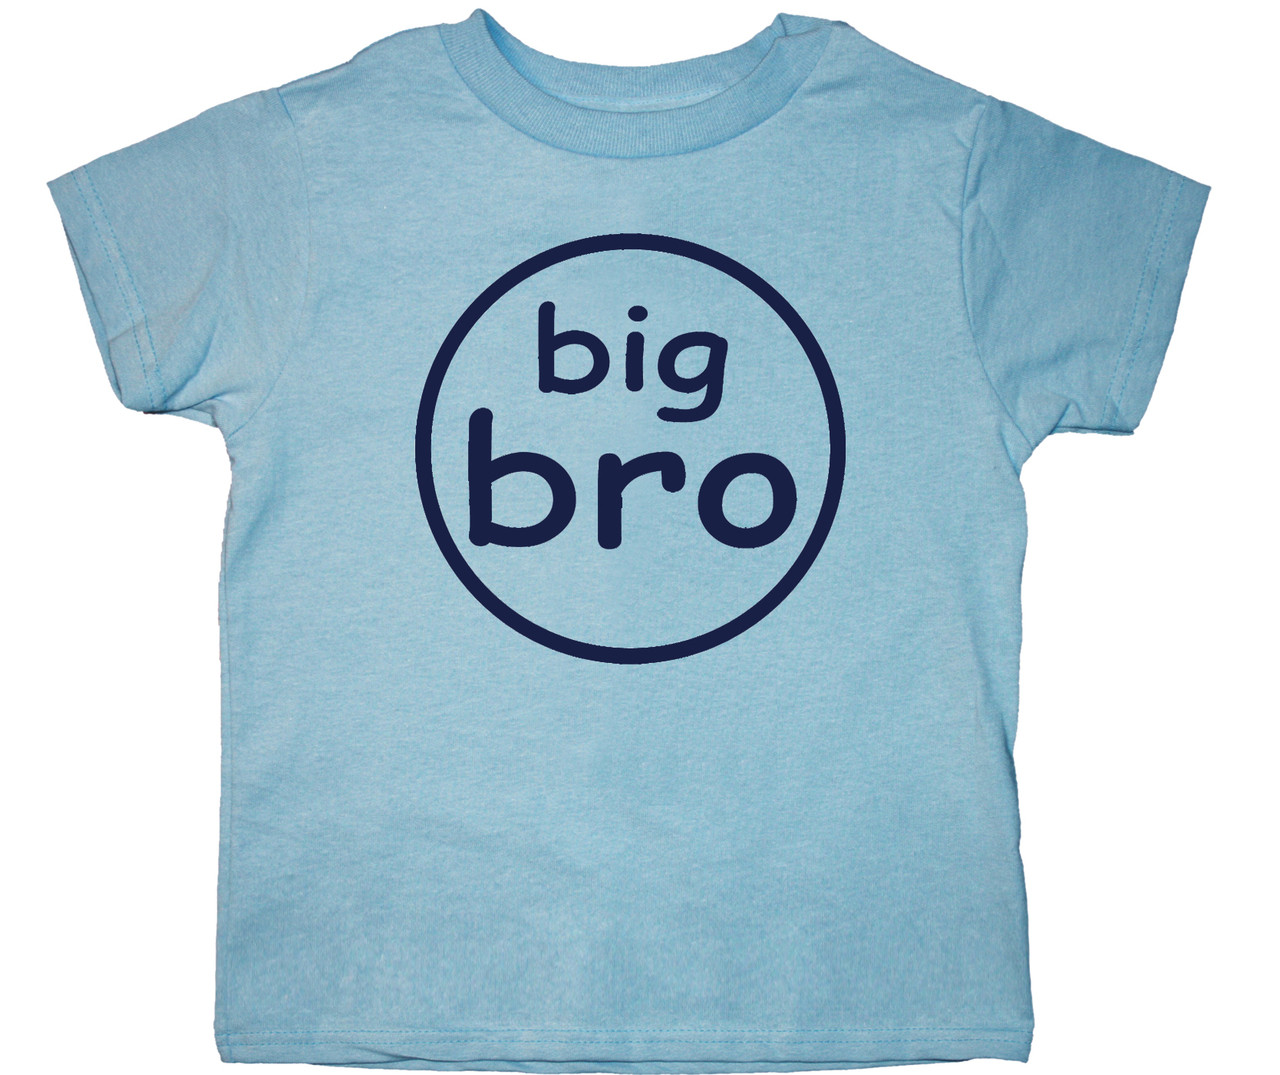 big bro circle tshirt on light blue shirt